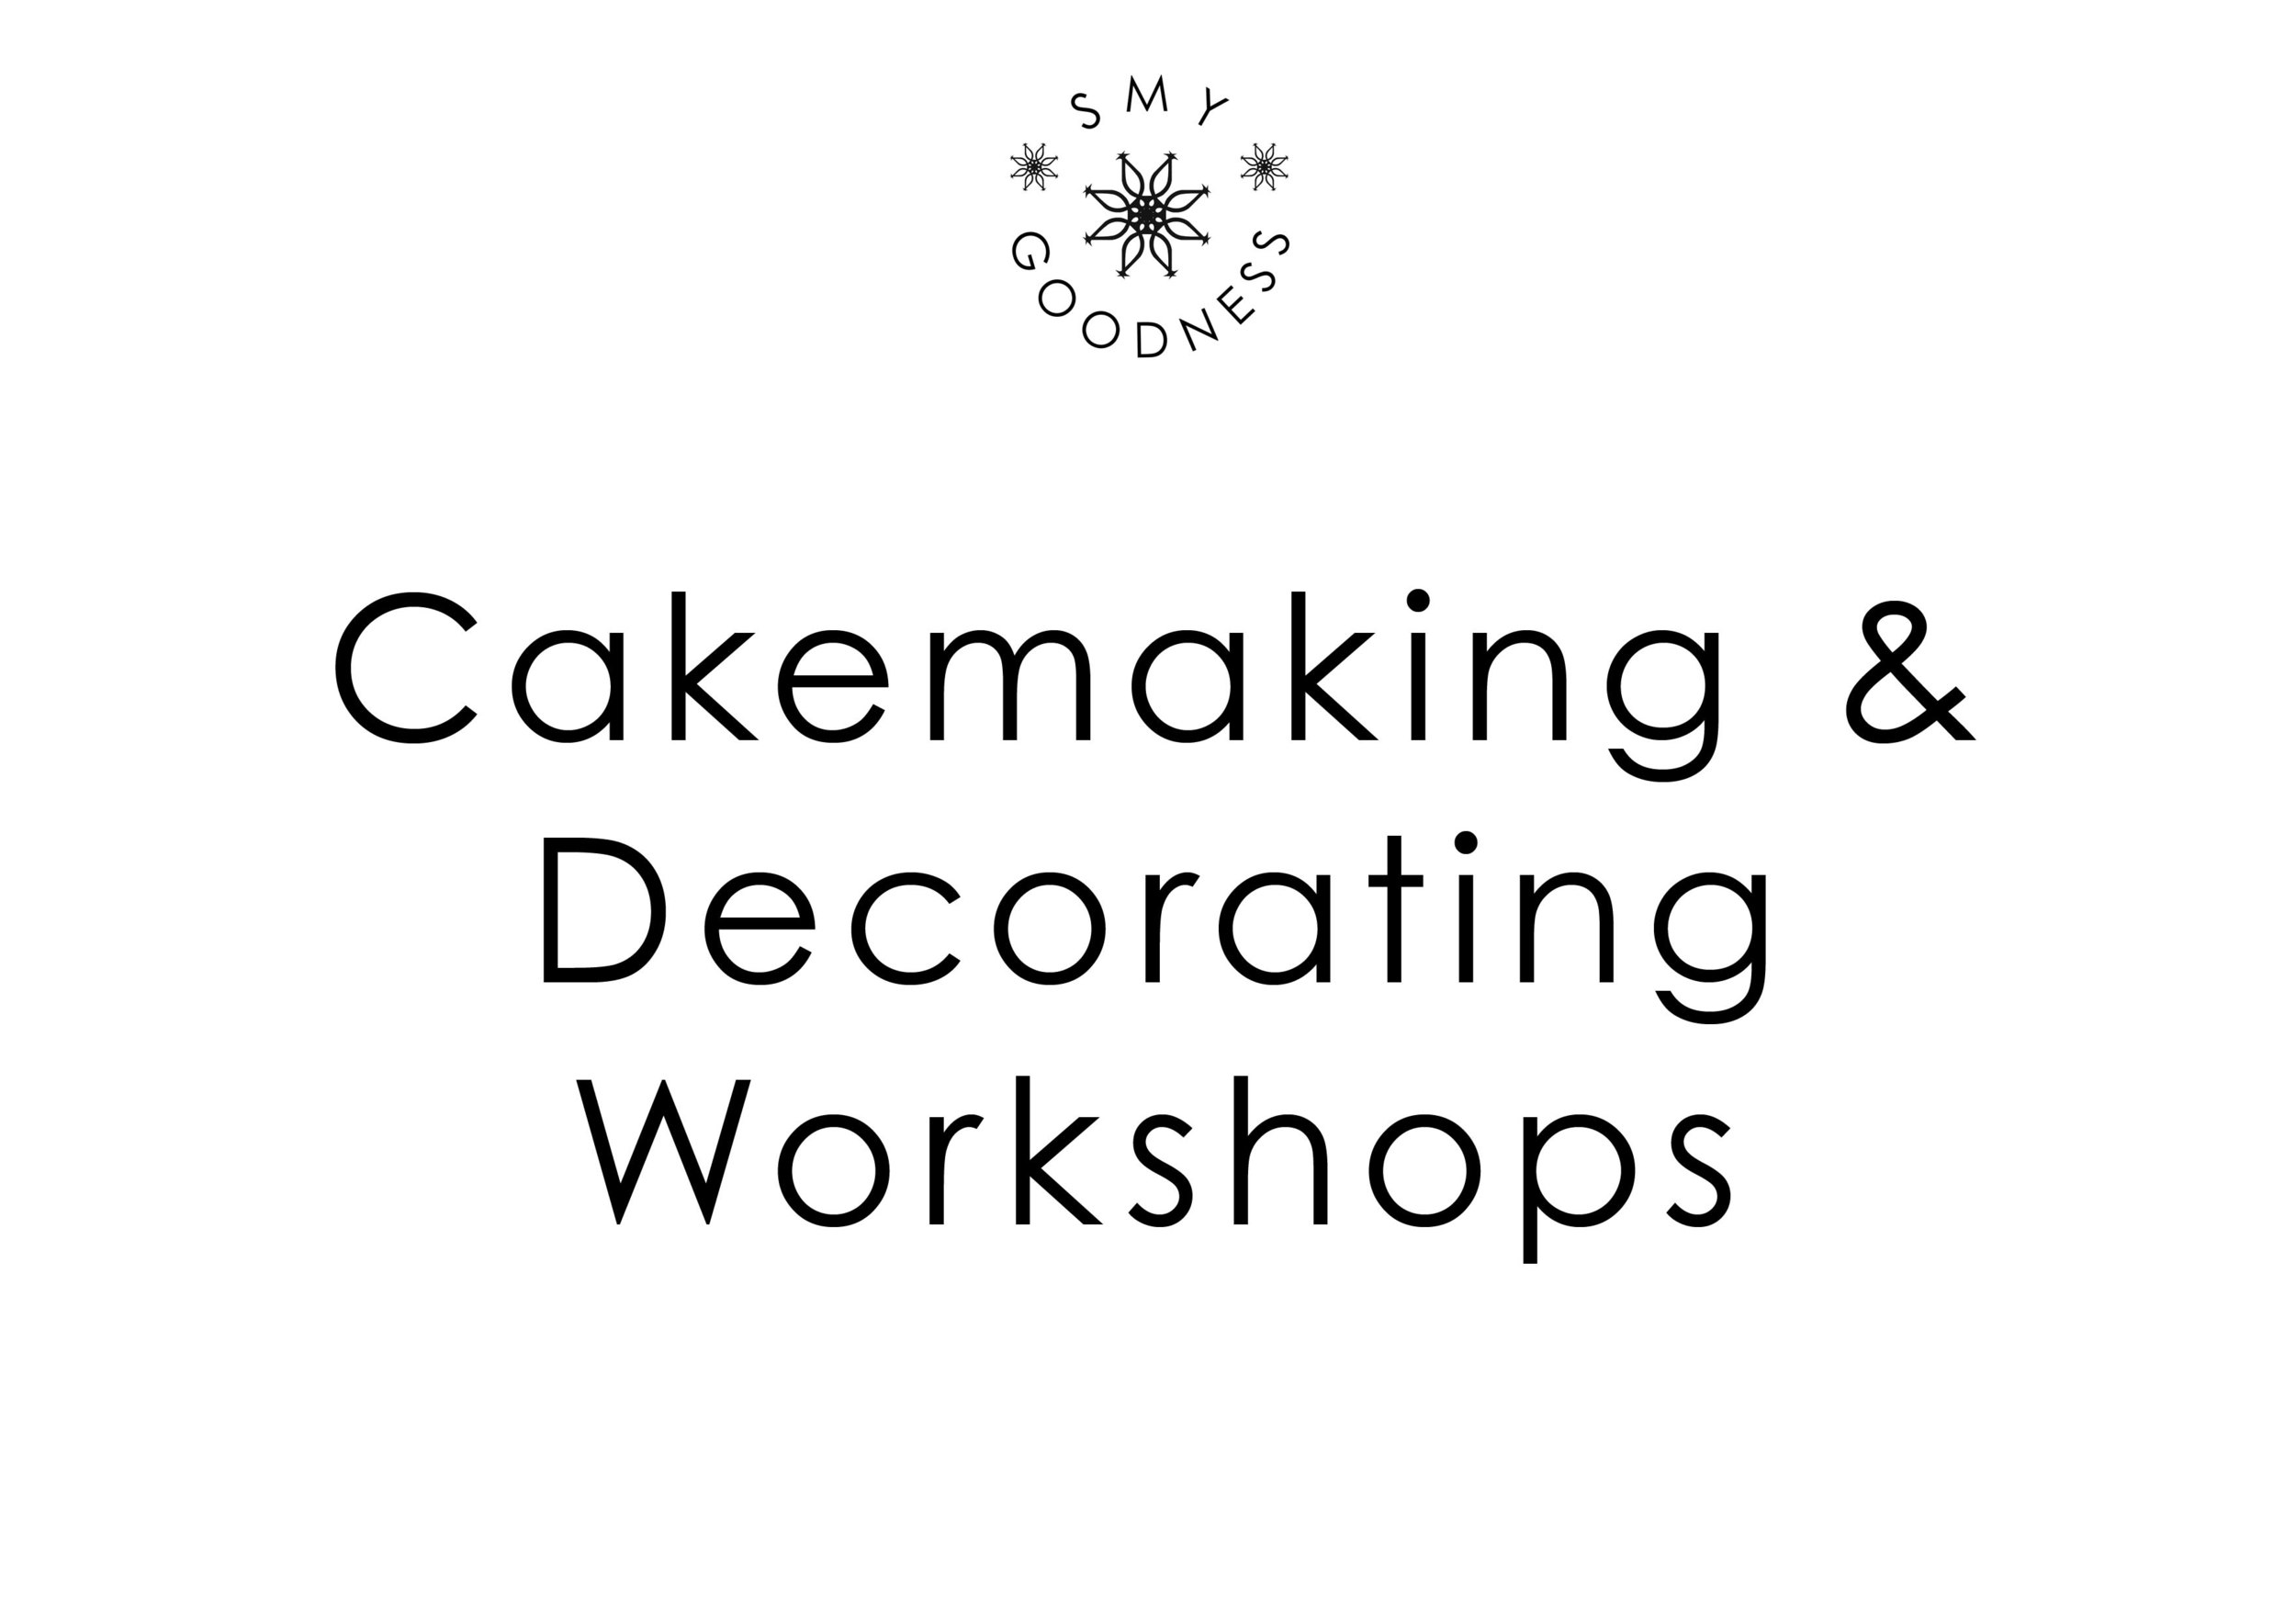 Cake Making and Decorating Workshop